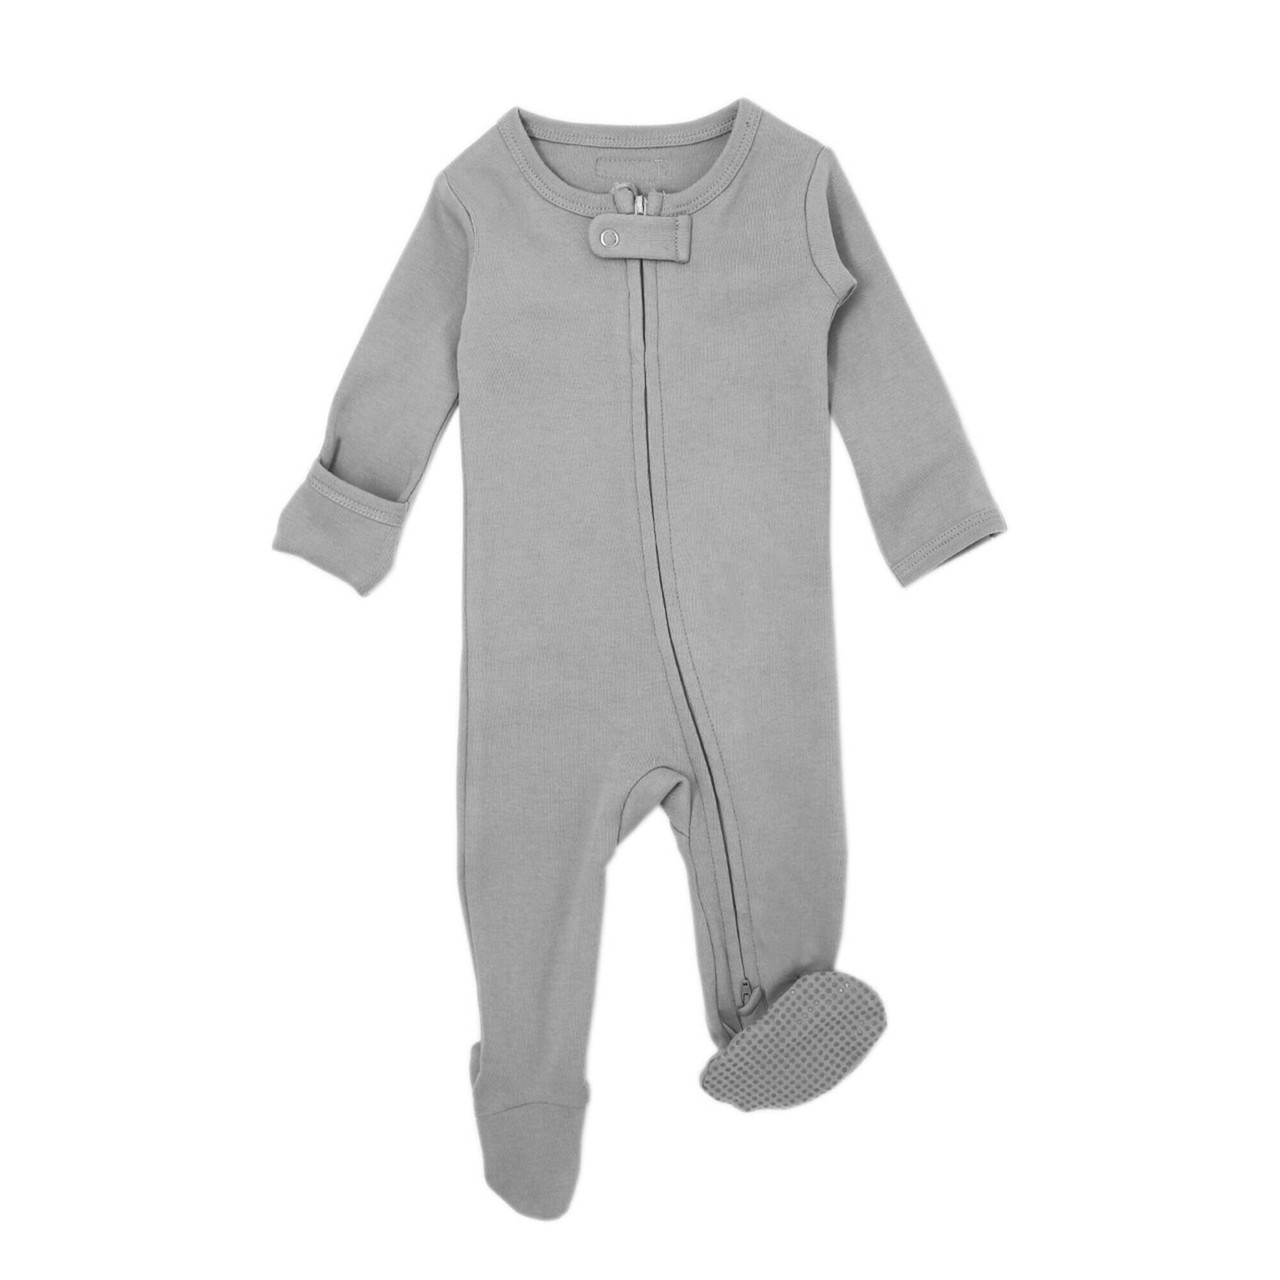 Organic Zipper Footed Overall in Light Gray, Flat